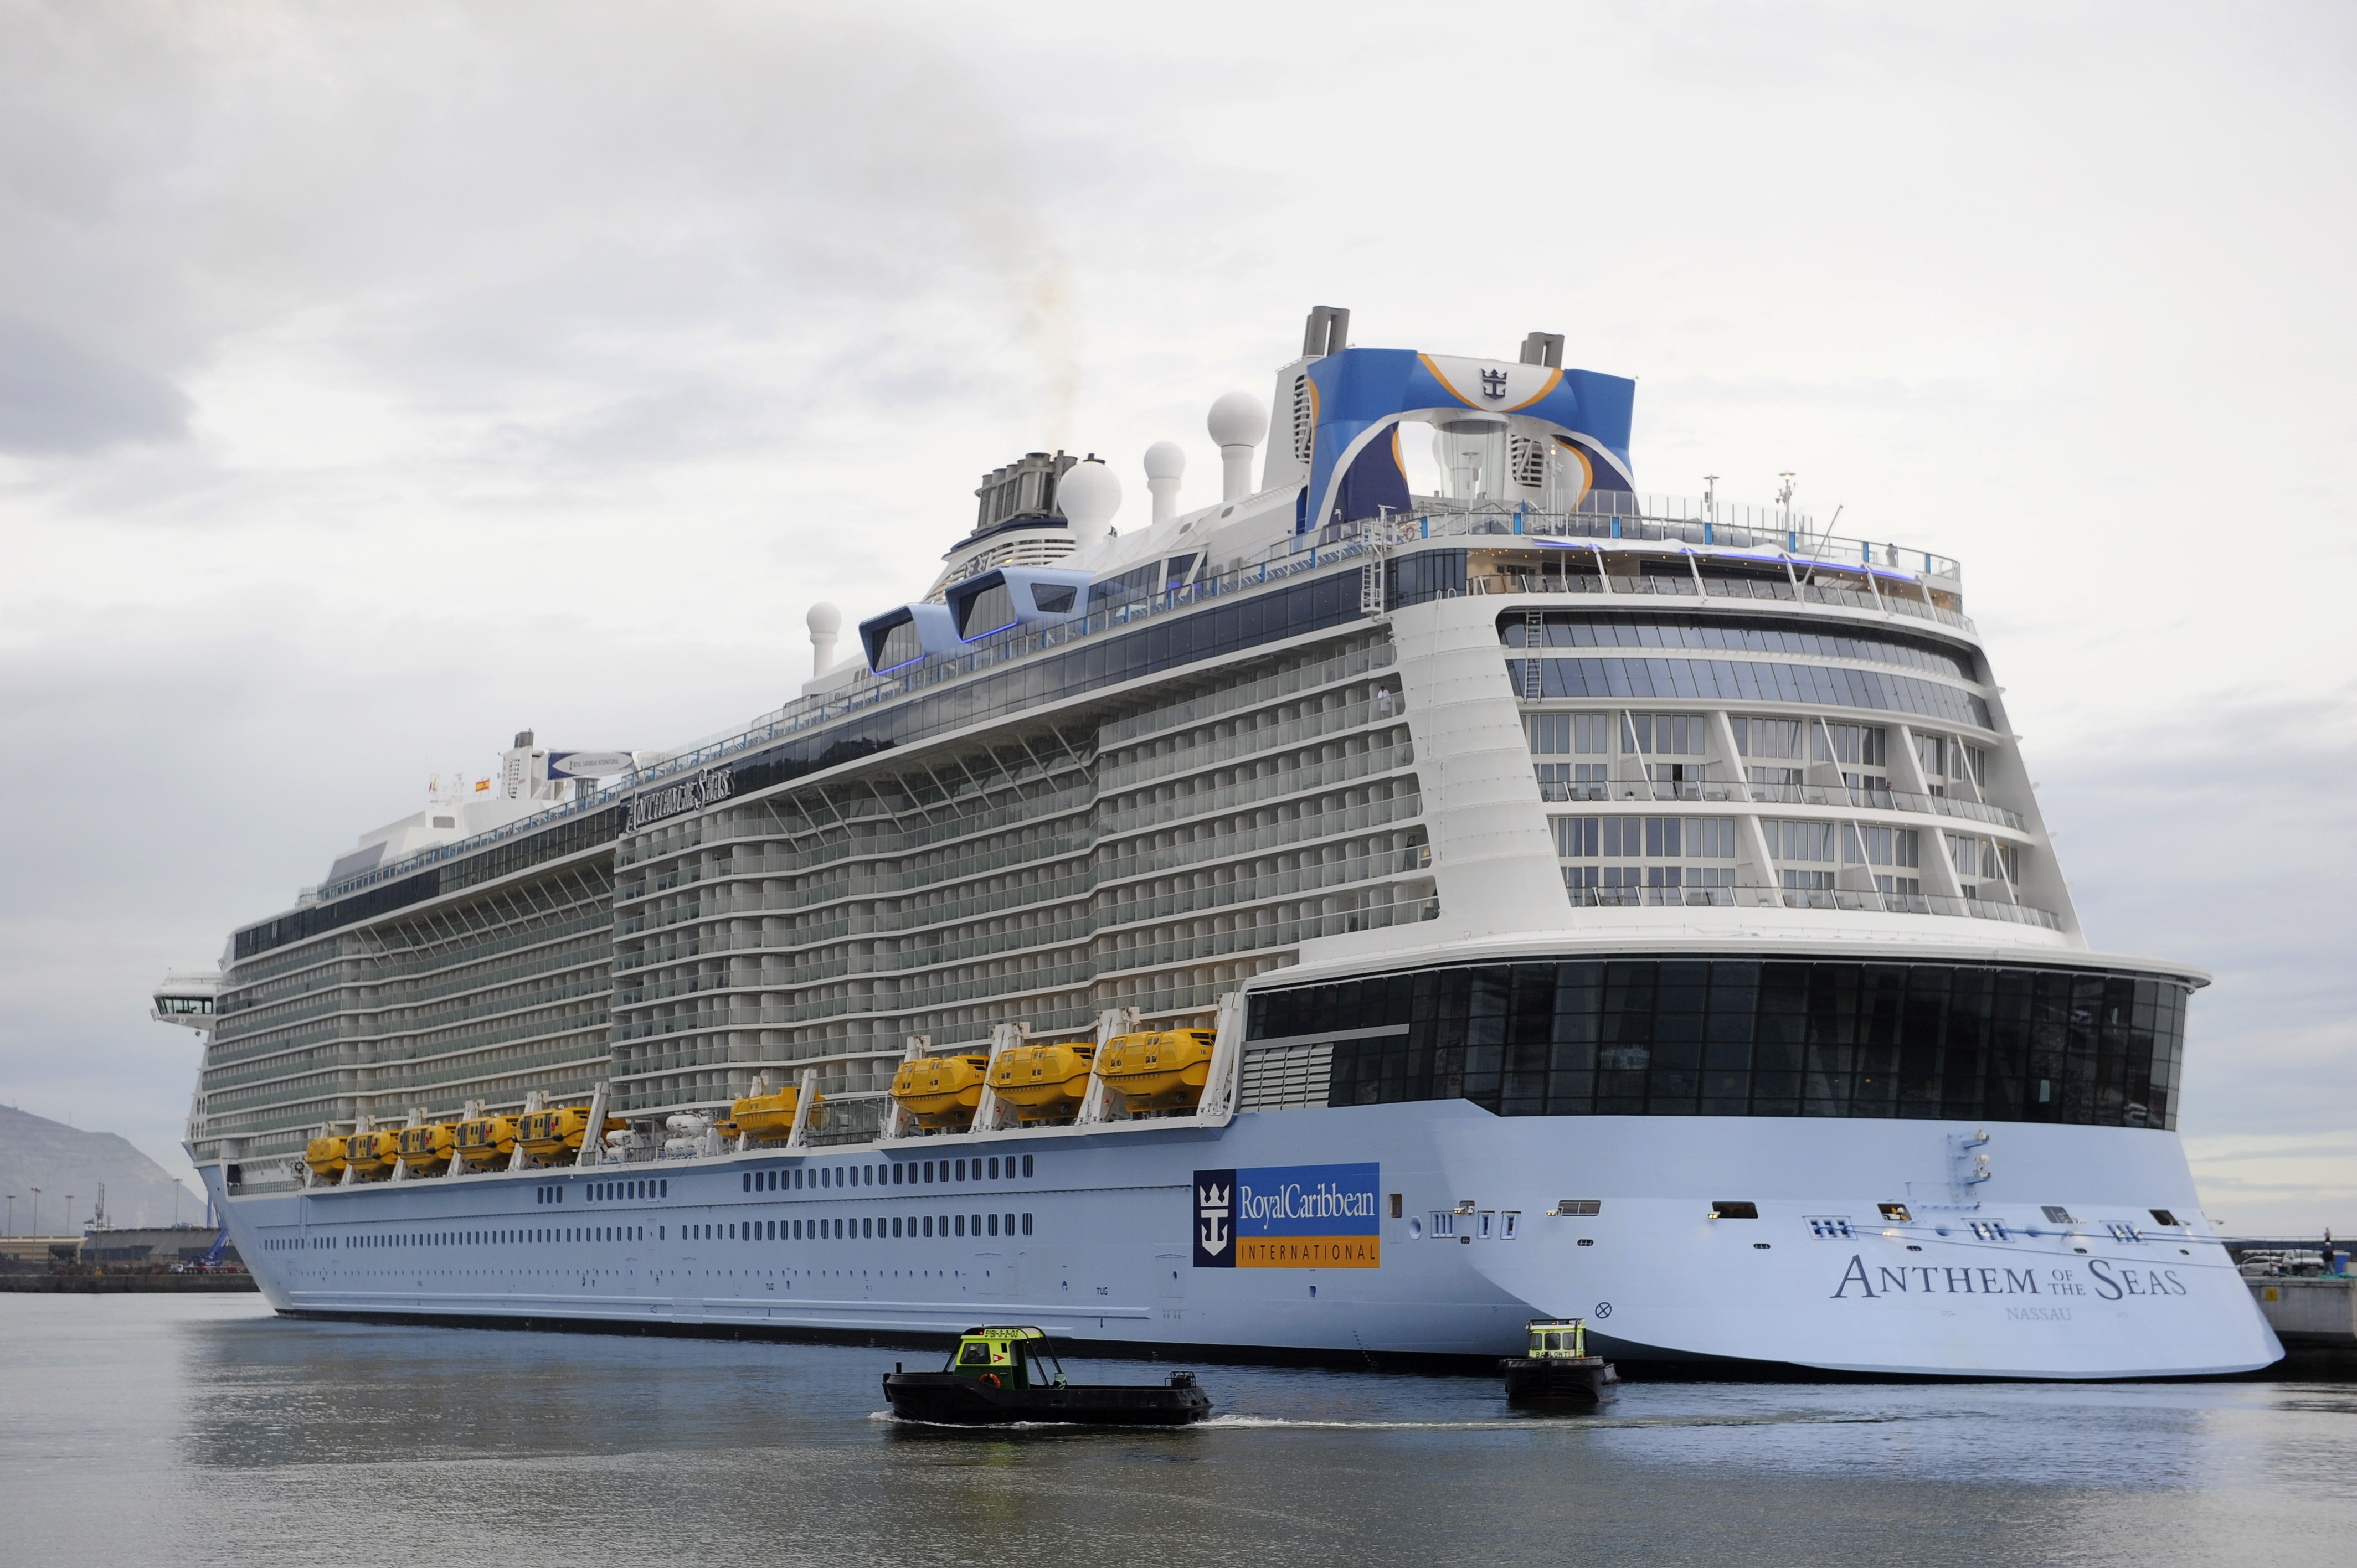 Anthem Of The Seas is seen moored at the port of Bilbao, Spain during its maiden voyage, on April 26, 2015. ANDER GILLENEA/AFP via Getty Images